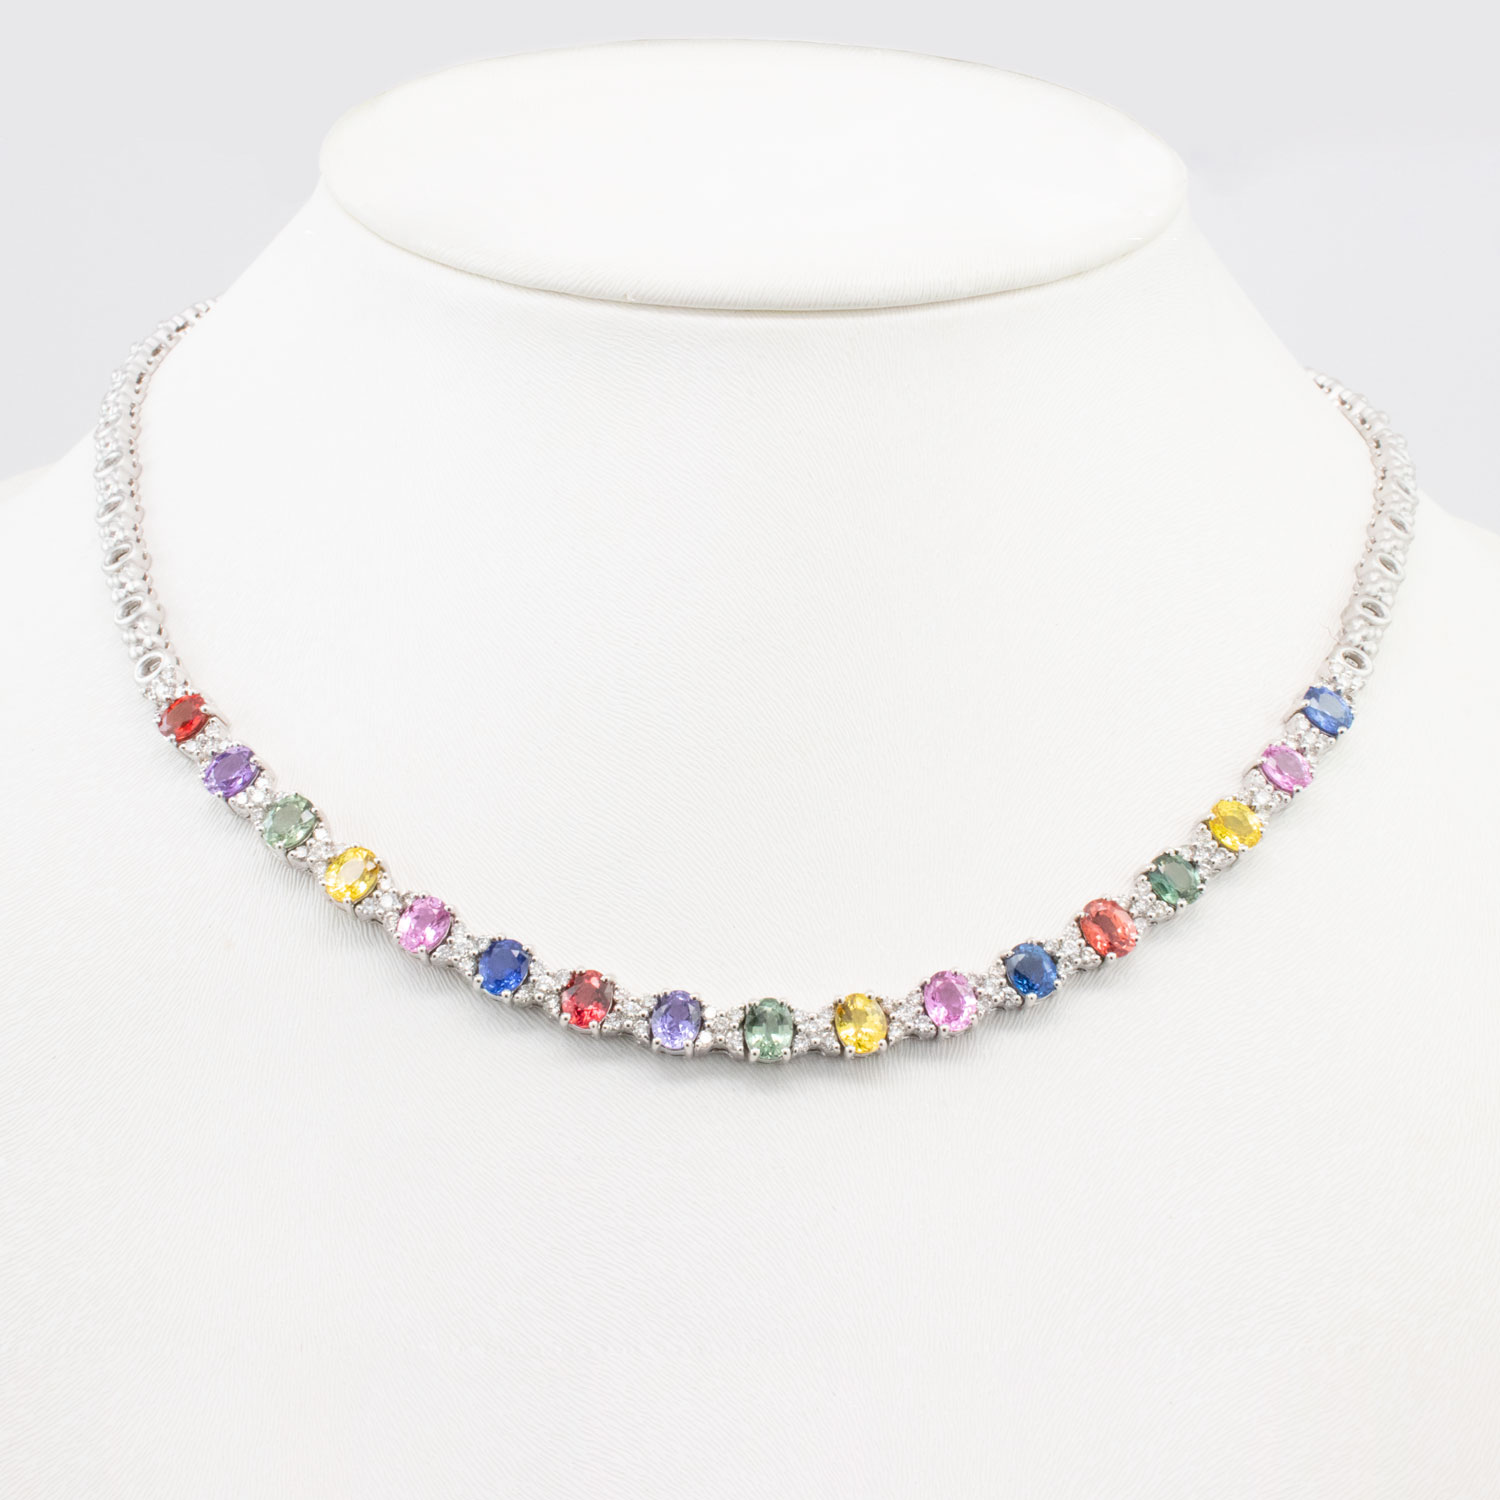 Hugs and Kisses Multicolored Sapphire and Diamond Necklace, 18k White Gold